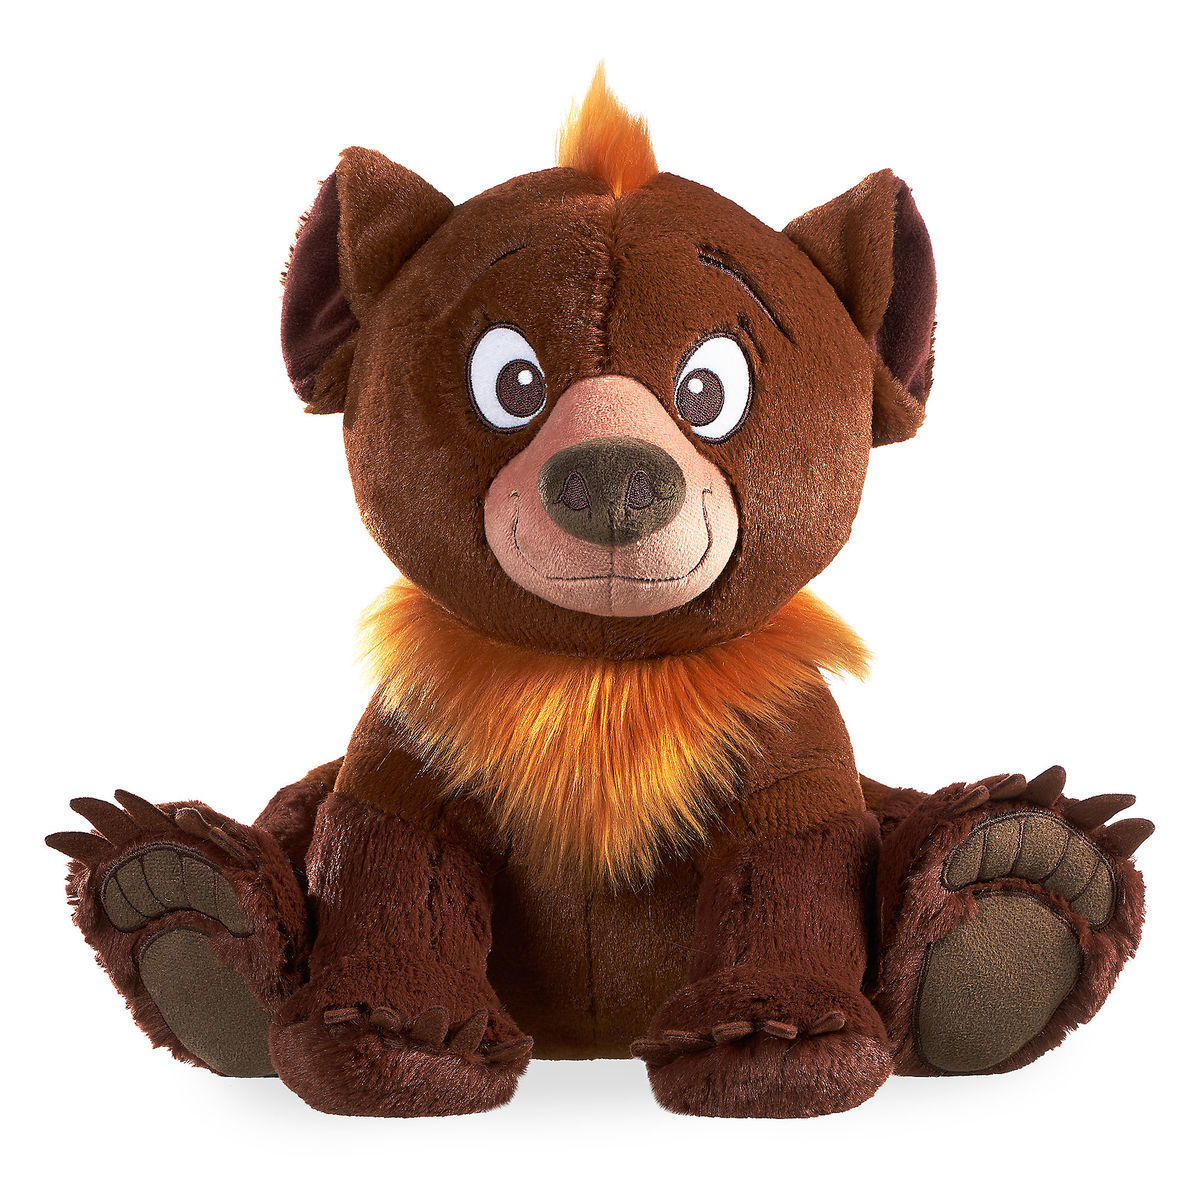 Koda Plush - Brother Bear - Medium | shopDisney